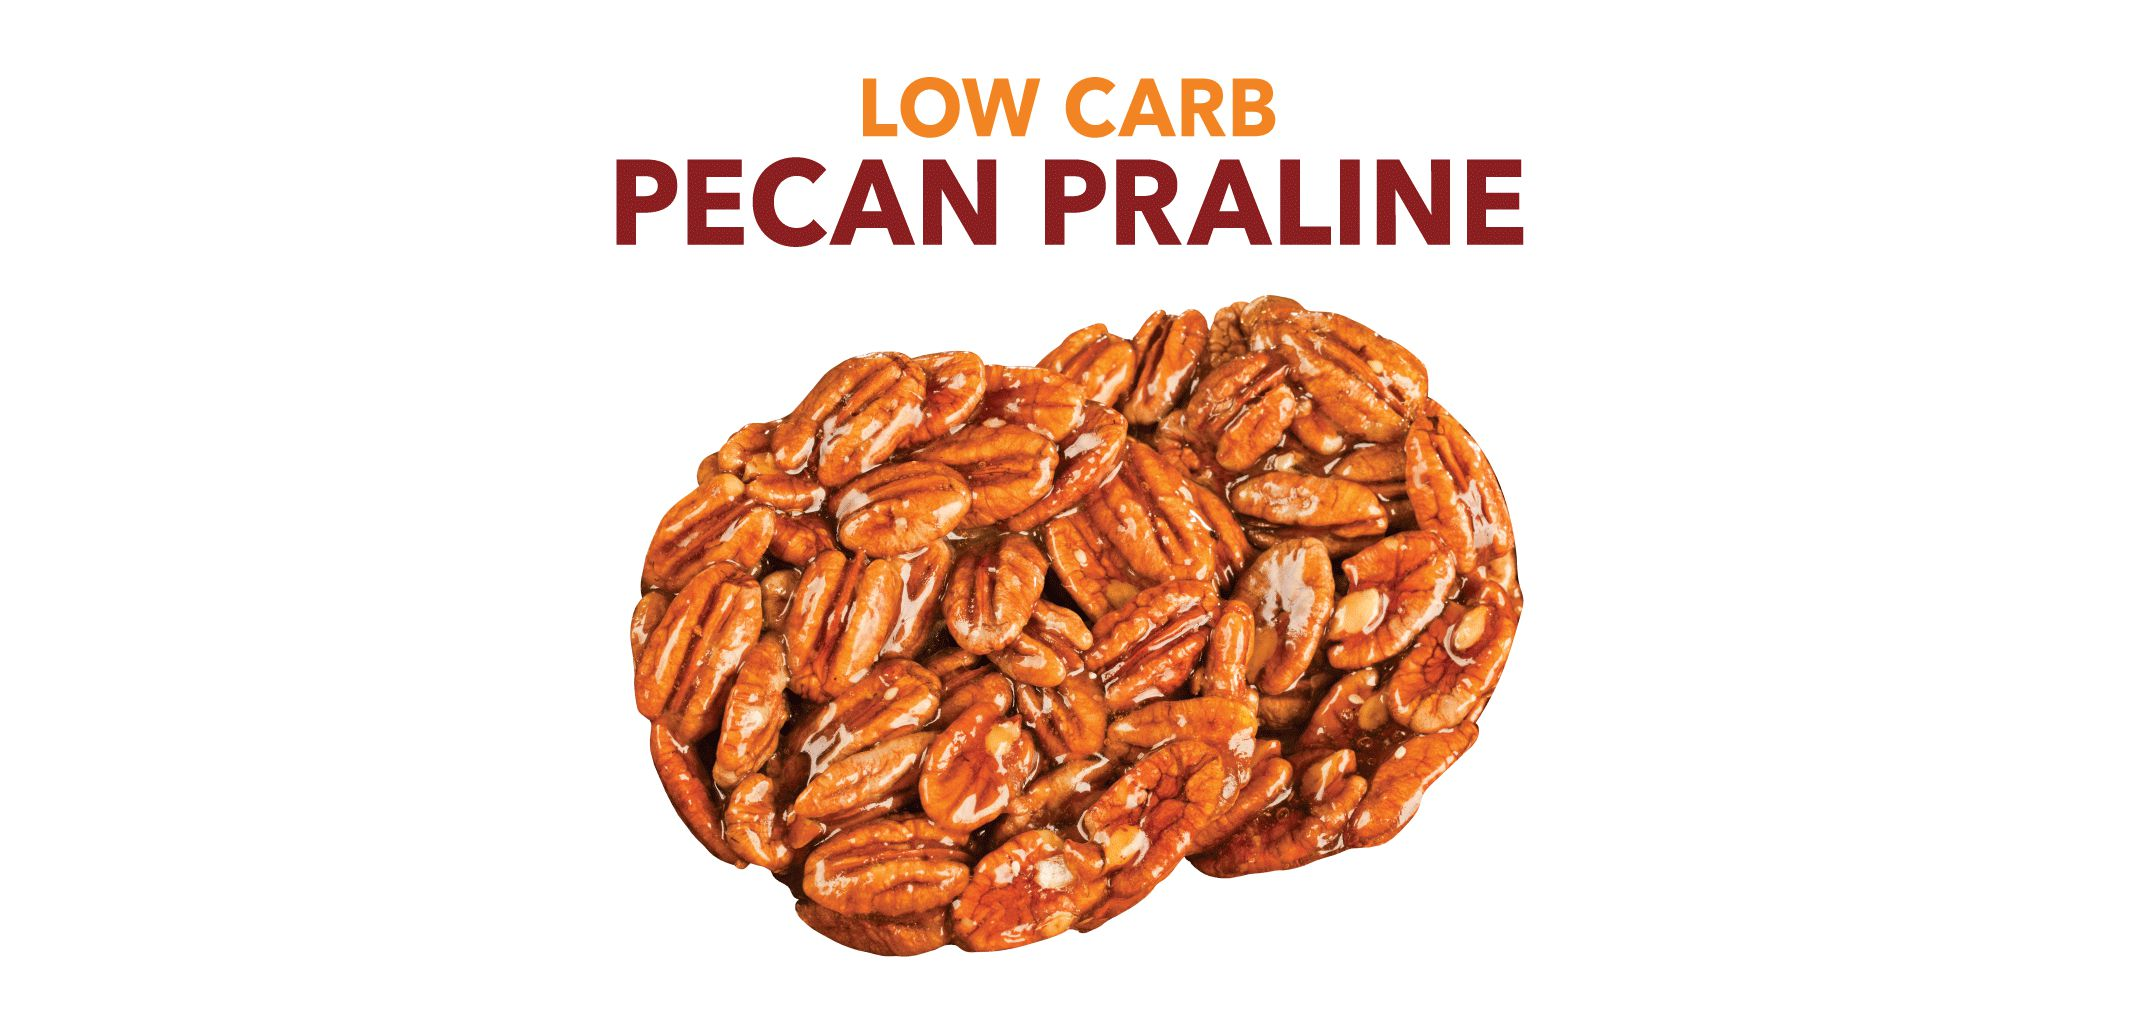 Low Carb Pecan Praline label image